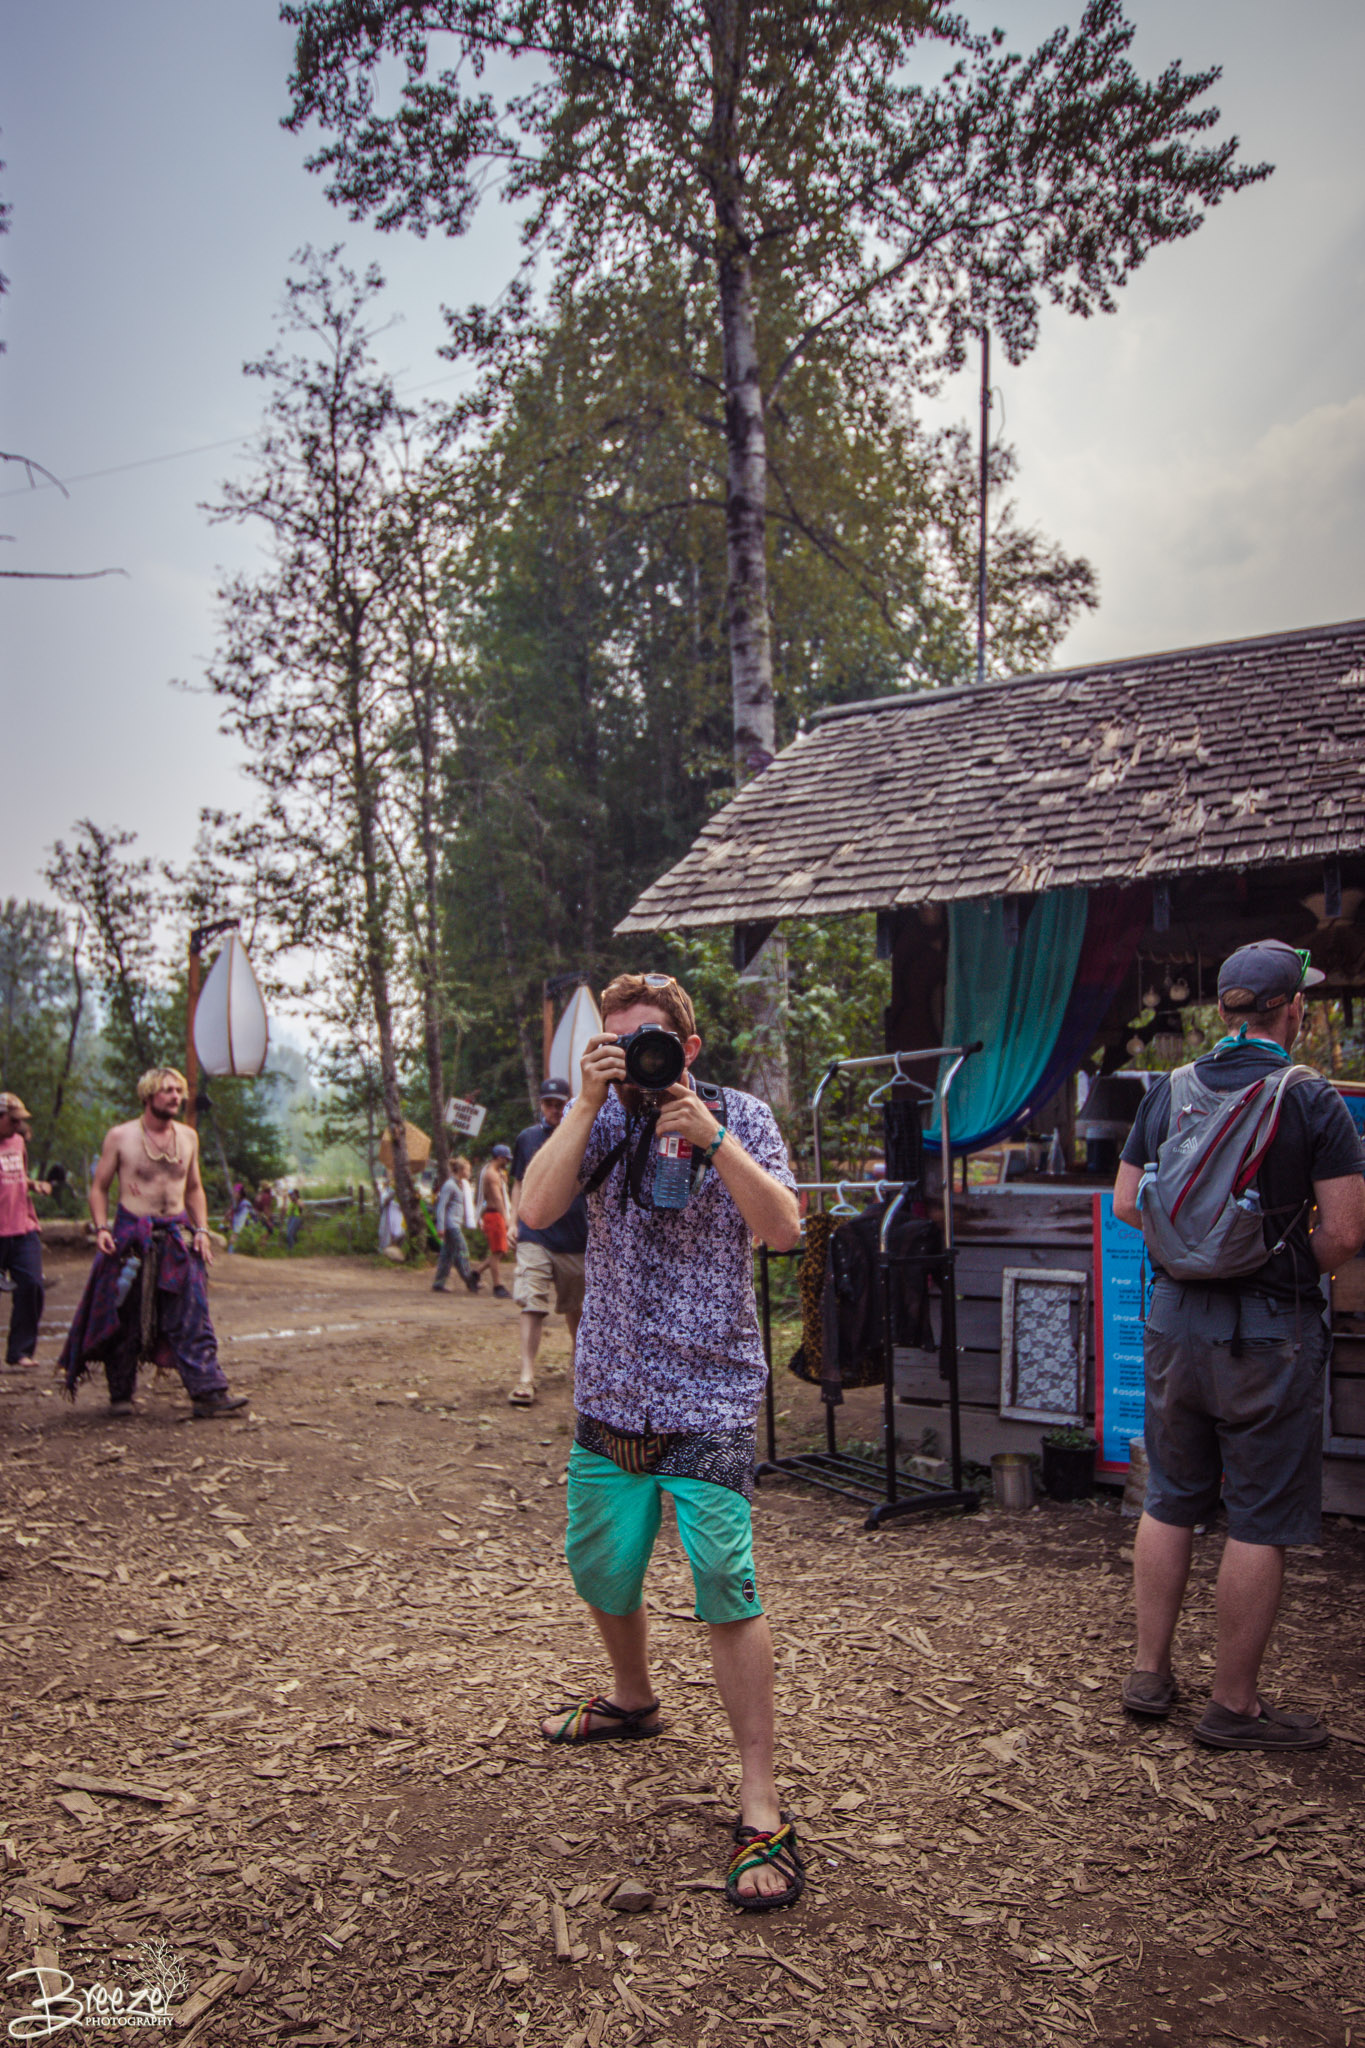 Brie'Ana Breeze Photography & Media - Shambhala 2018-1741.jpg